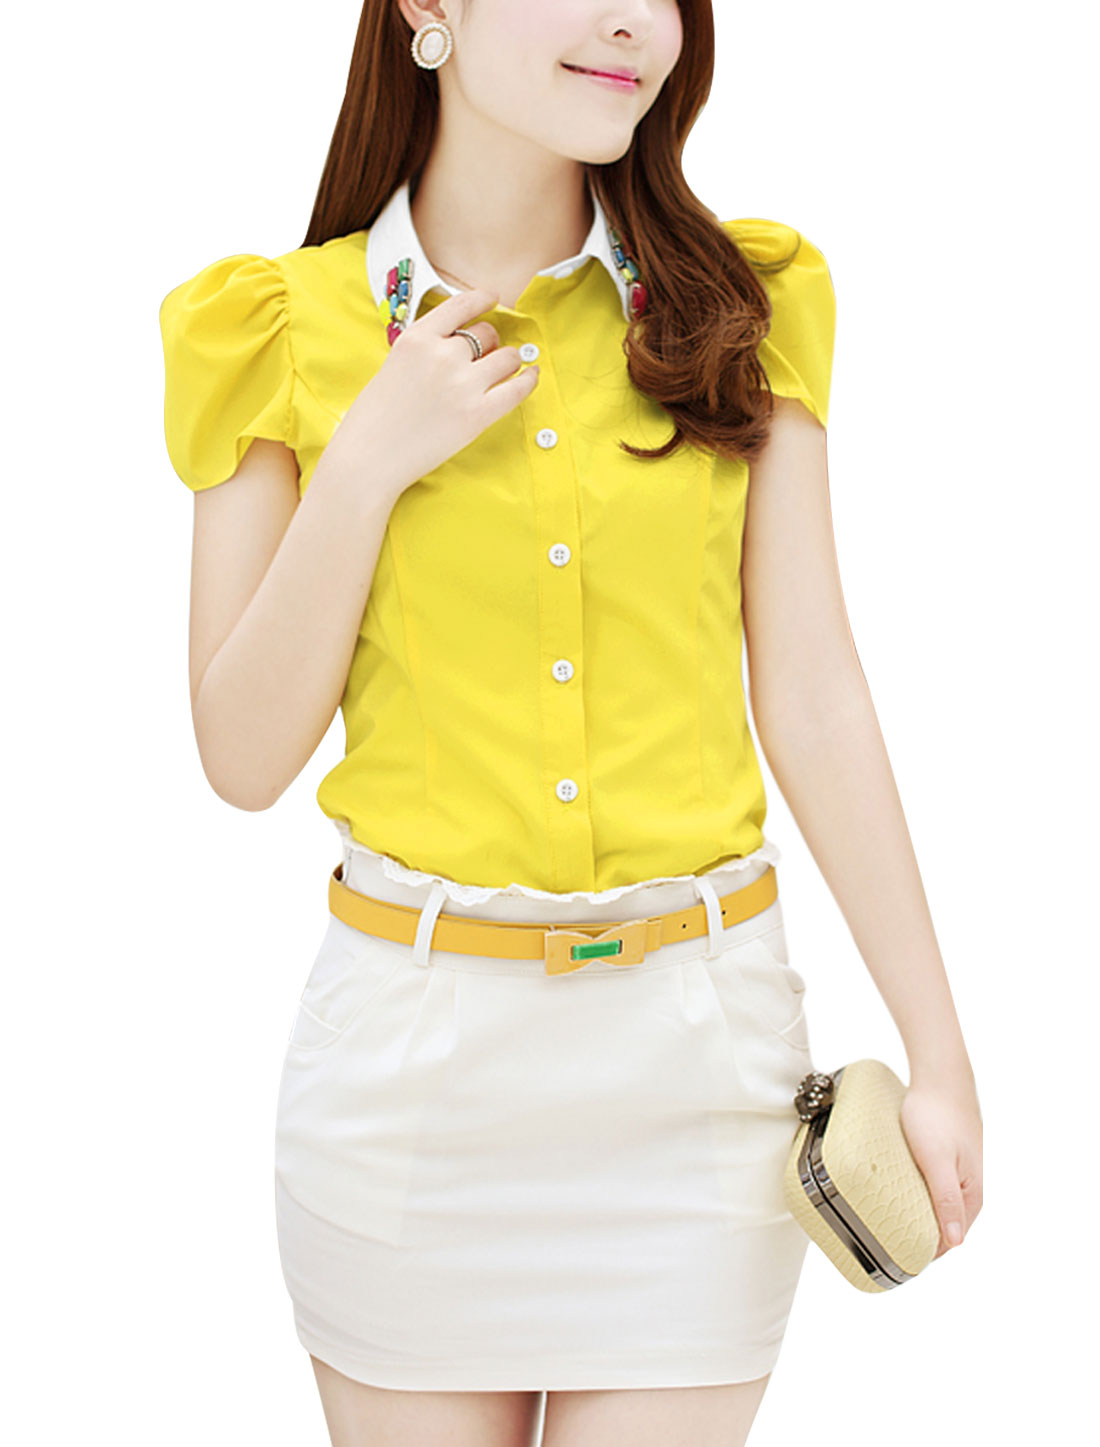 Lady Single Breasted Rhinestone Decor Casual Shirt Yellow L